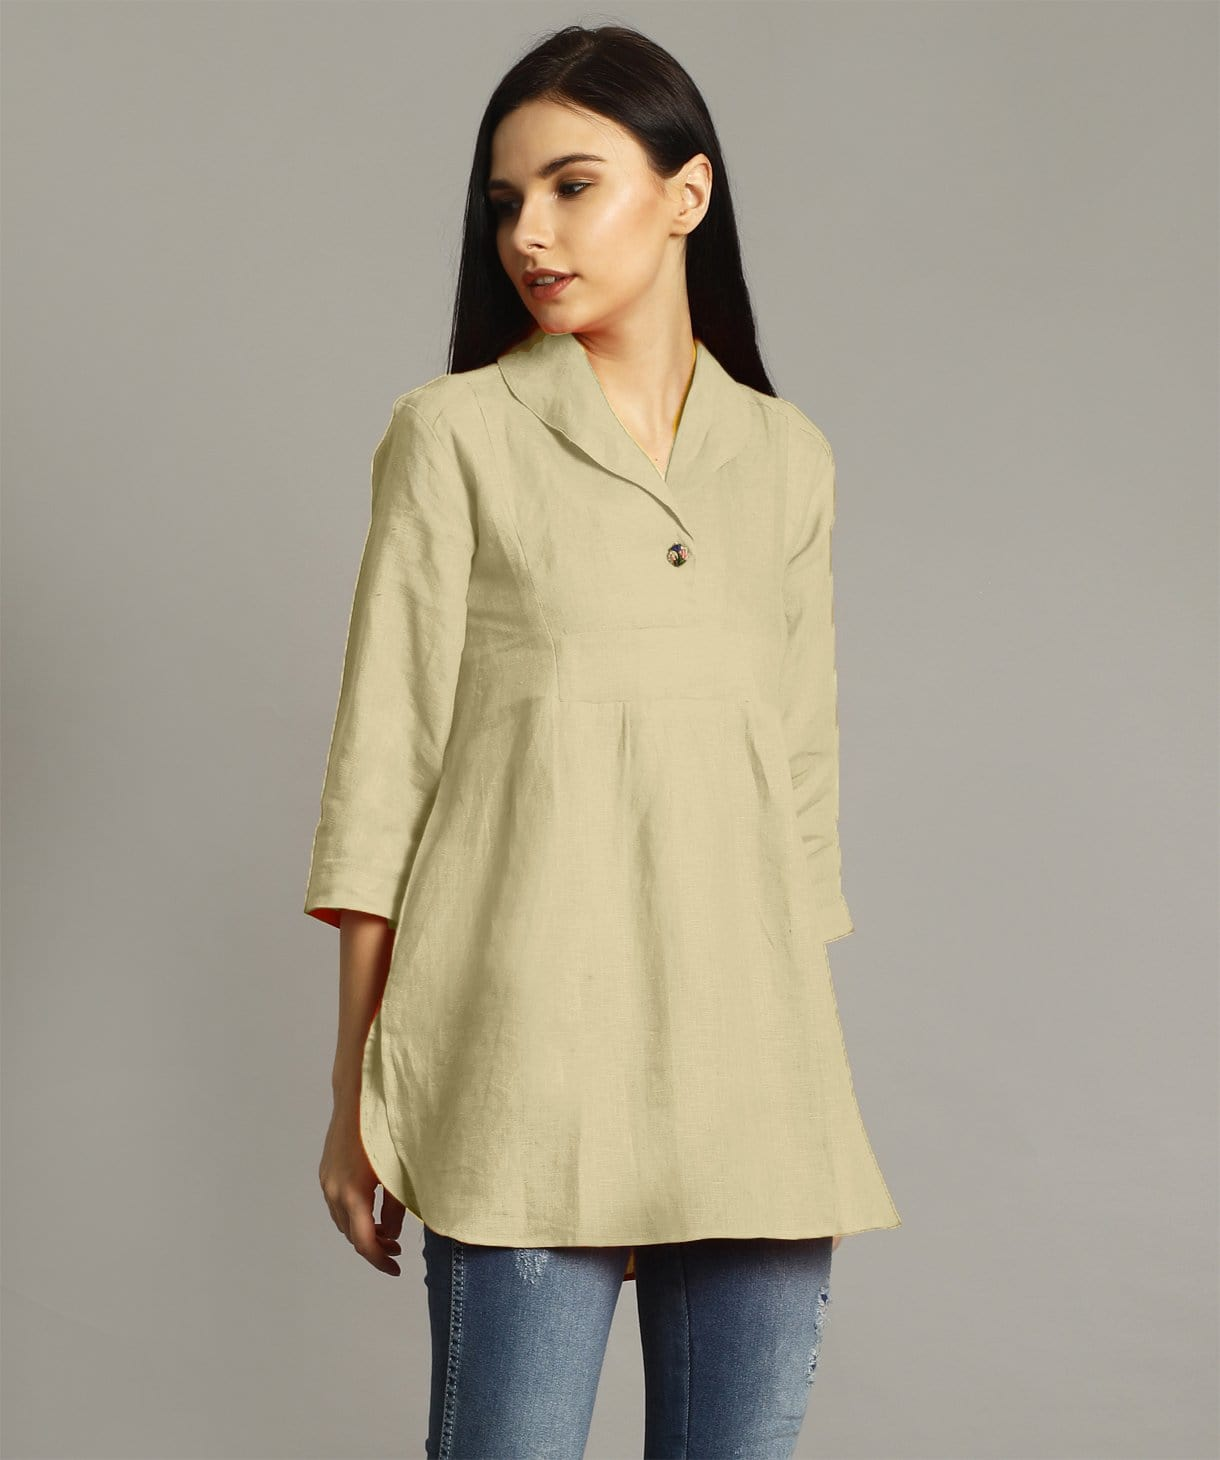 Uptownie Plus Off White High-Low Handloom Tunic. FLAT 200 OFF